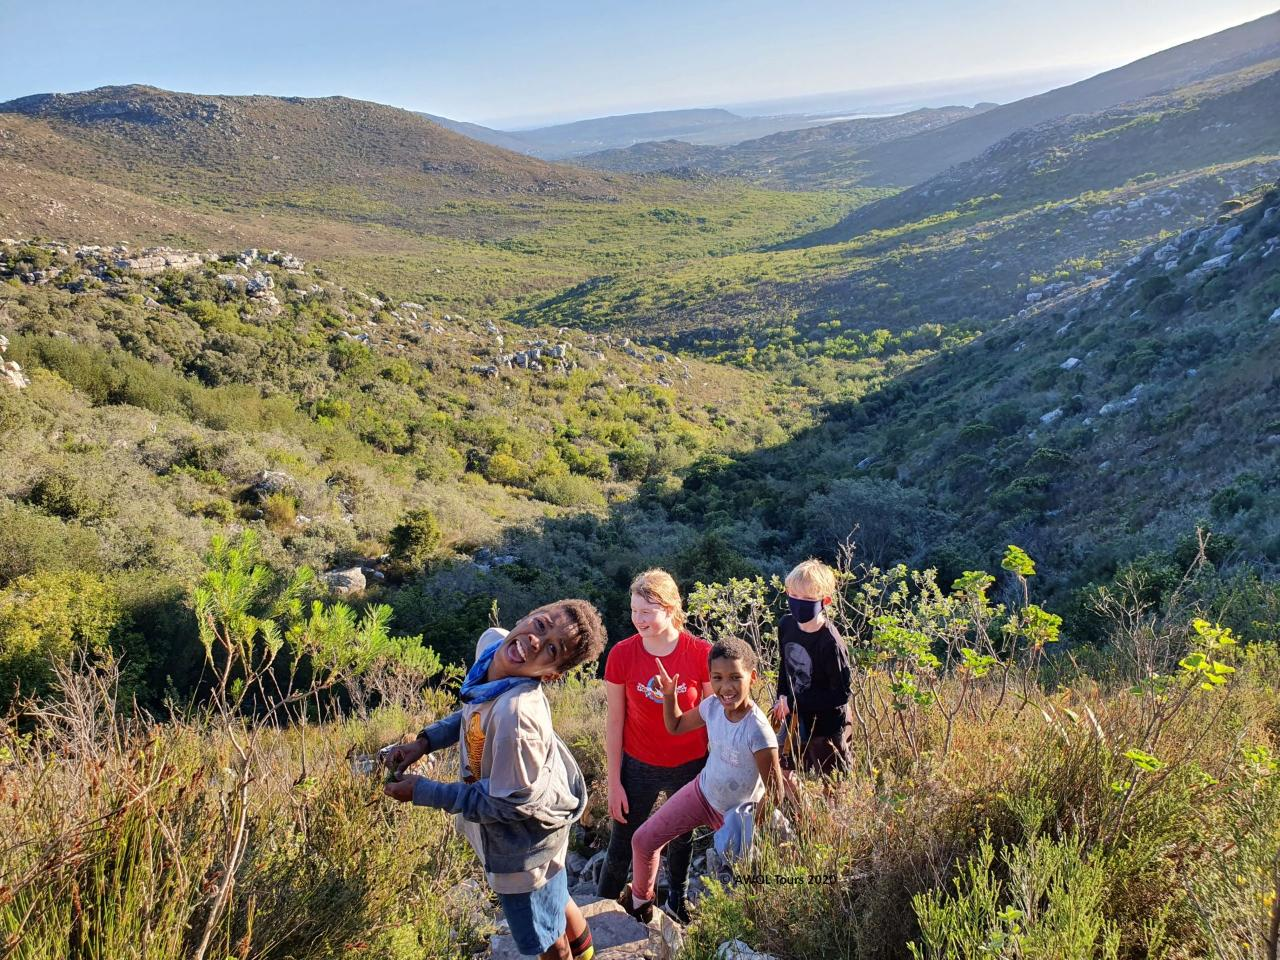 Educational nature walks and hikes